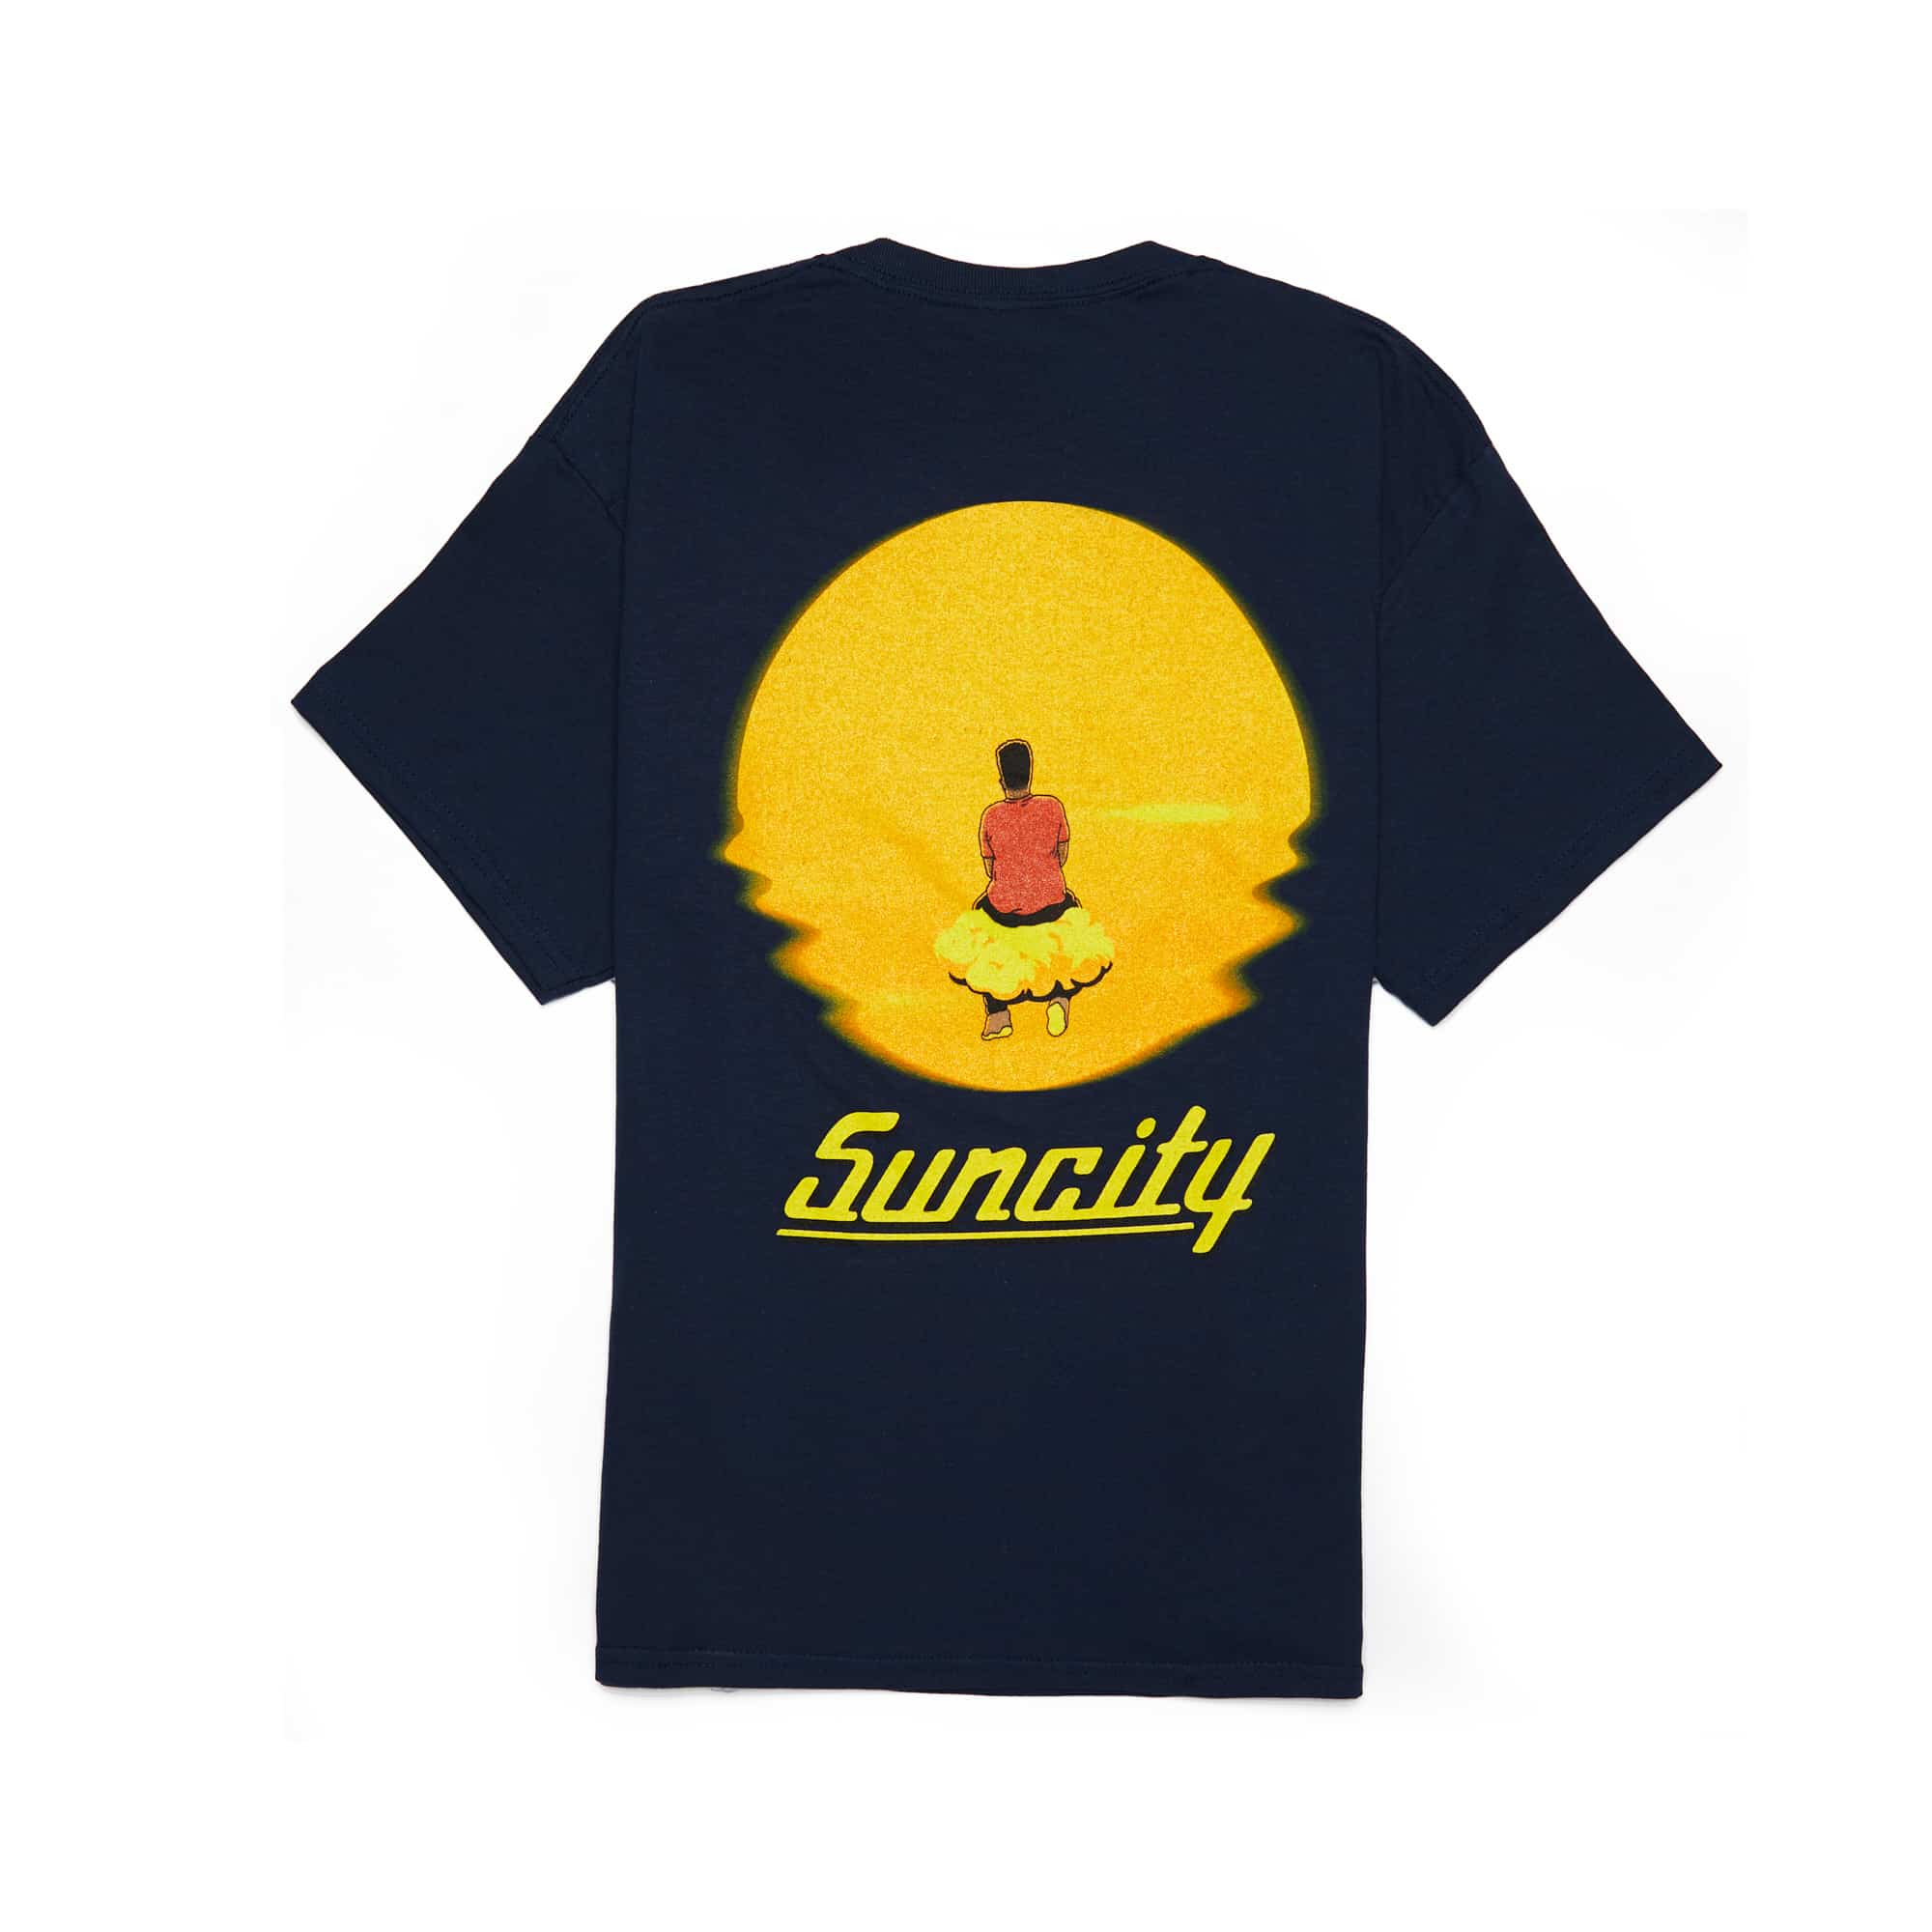 'Suncity' Tee + Digital Download - Navy